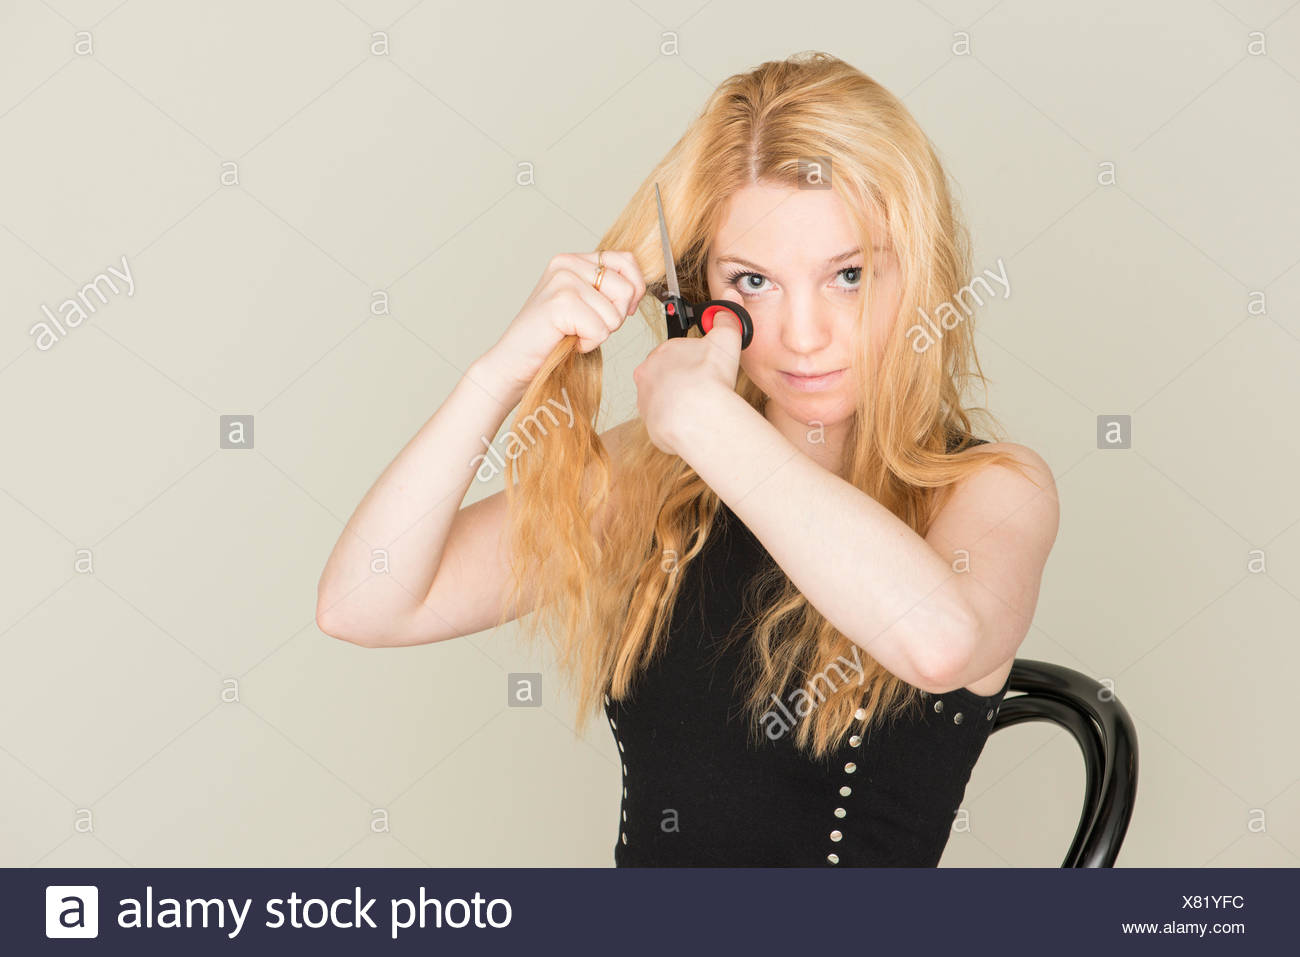 Teenage girl cutting her hair with scissors